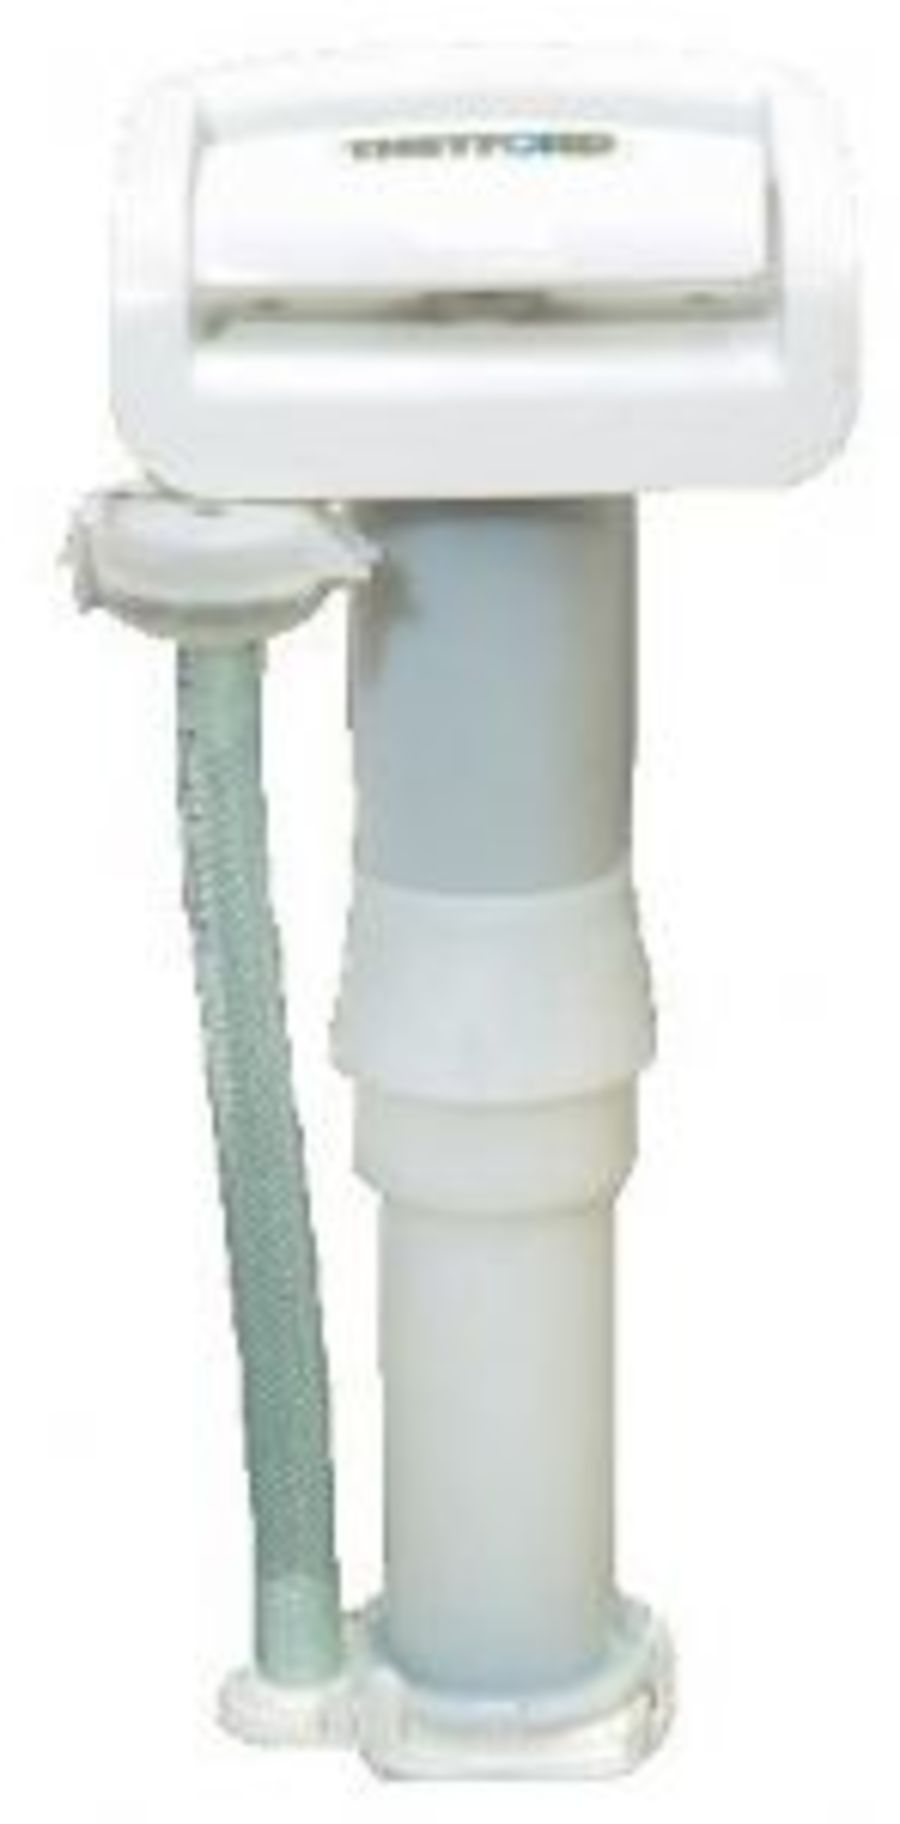 Thetford Toilet SC200 Manual Pump - 2373962